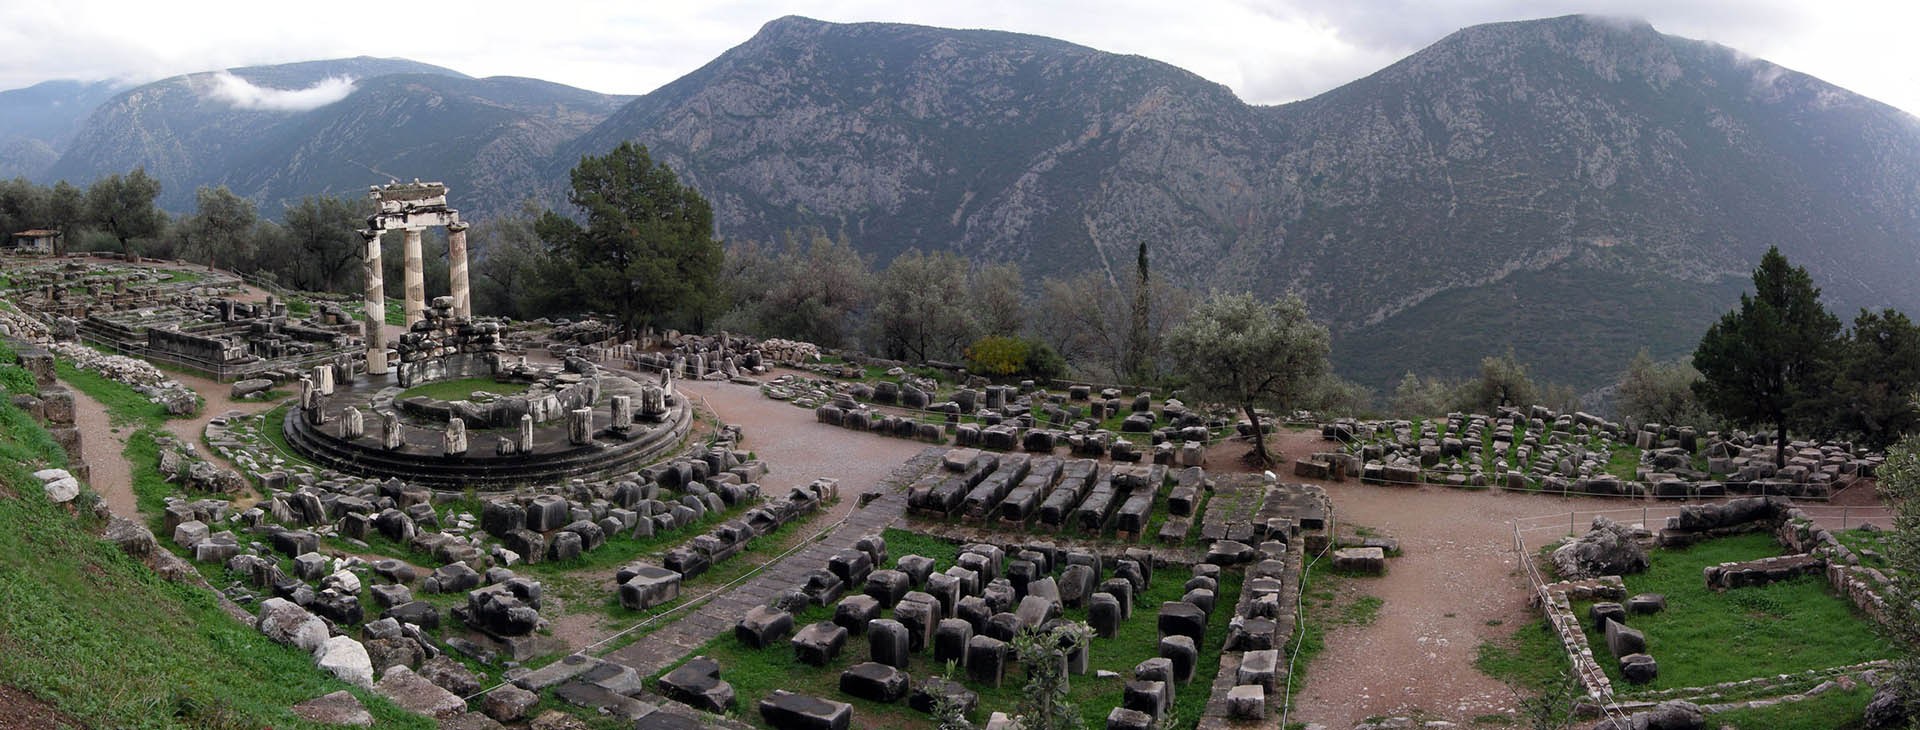 Delphi - Pronaia Sanctuary, , Fokis